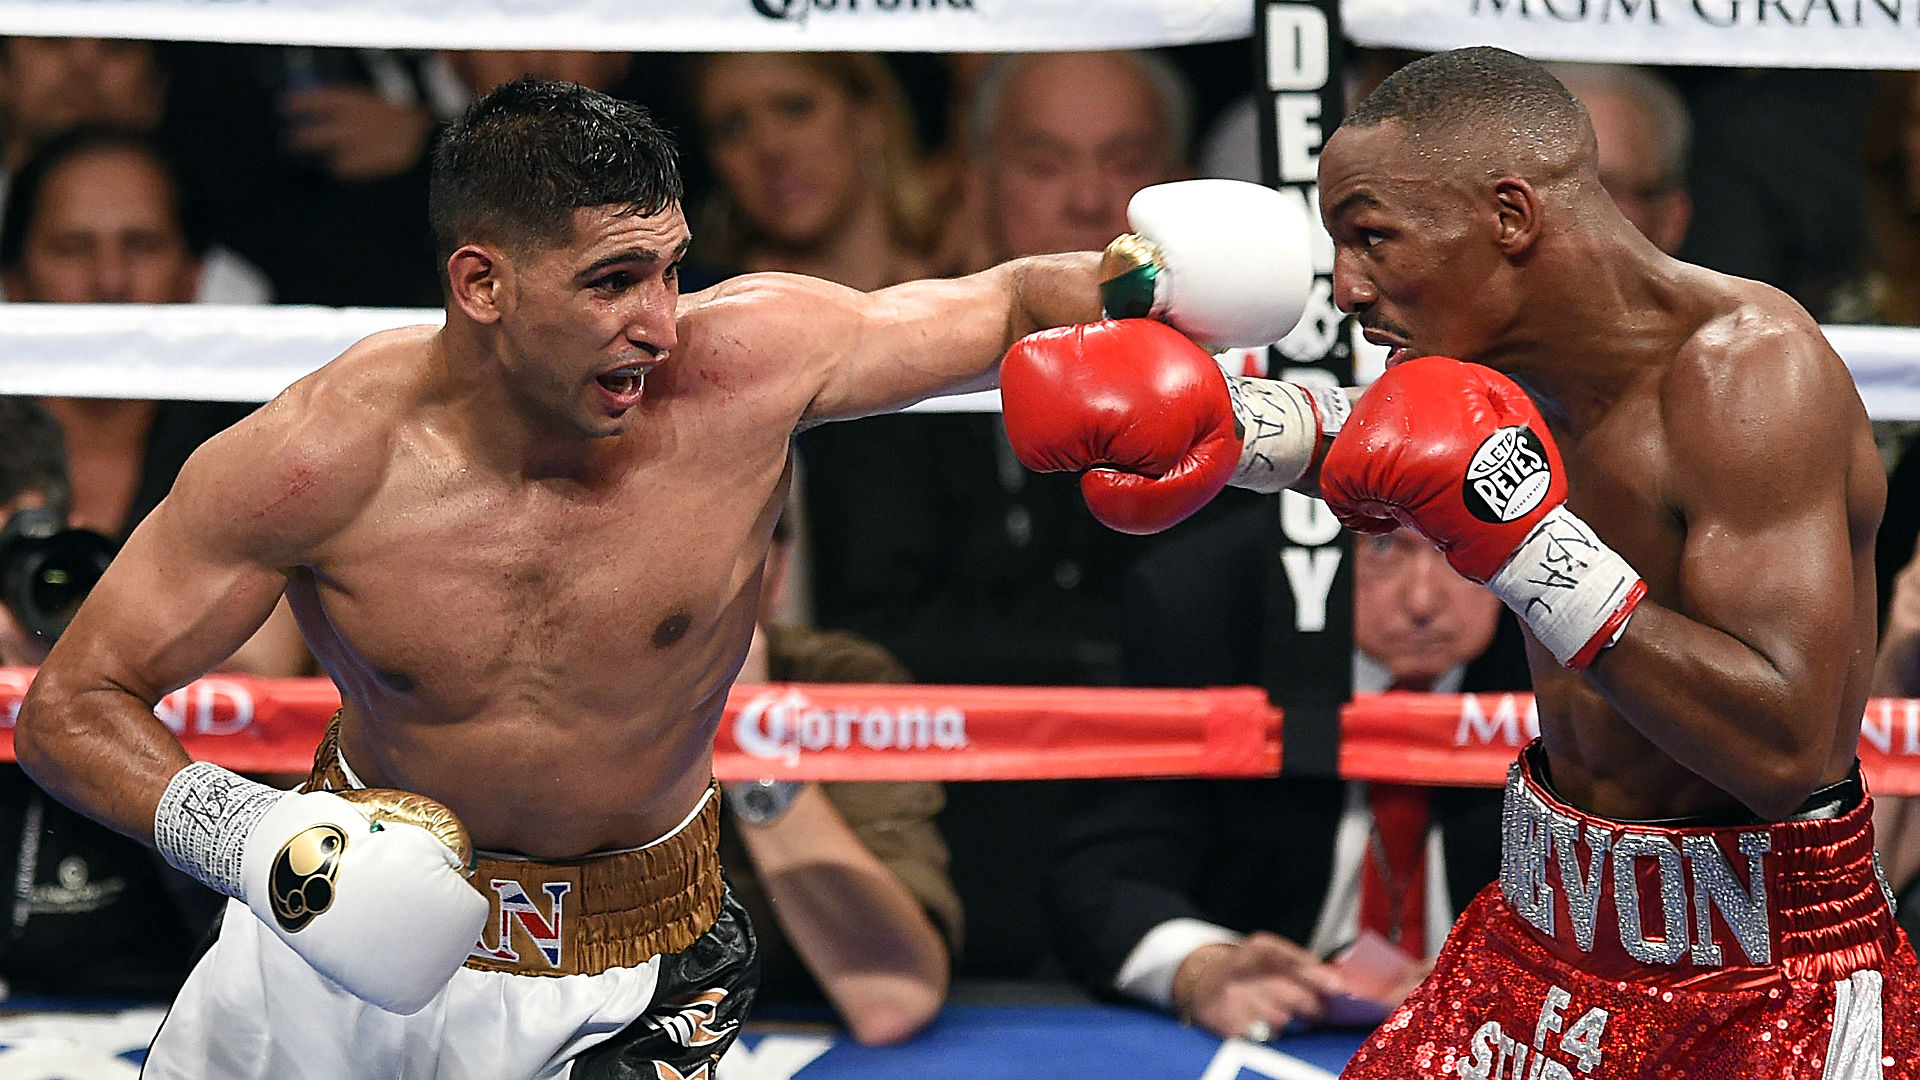 Khan vs. Algieri odds – Are we watching Mayweather's next opponent?